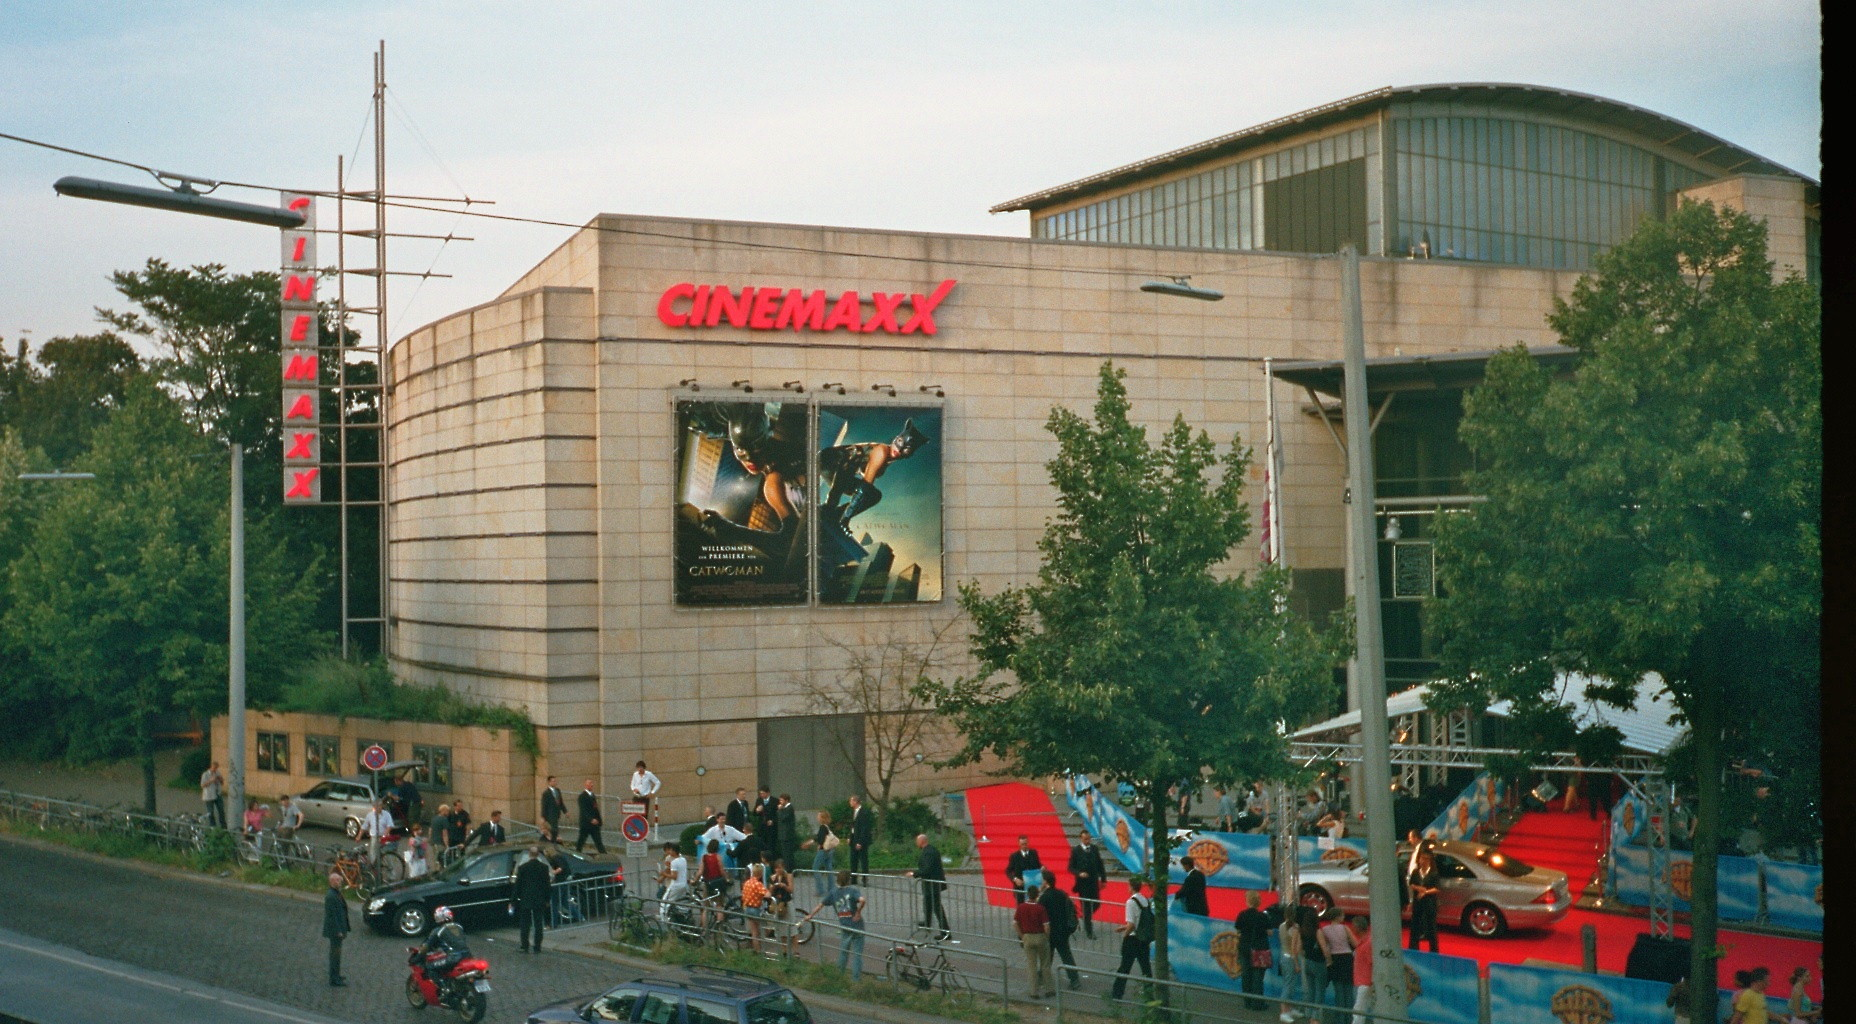 Cinemax Hamburg